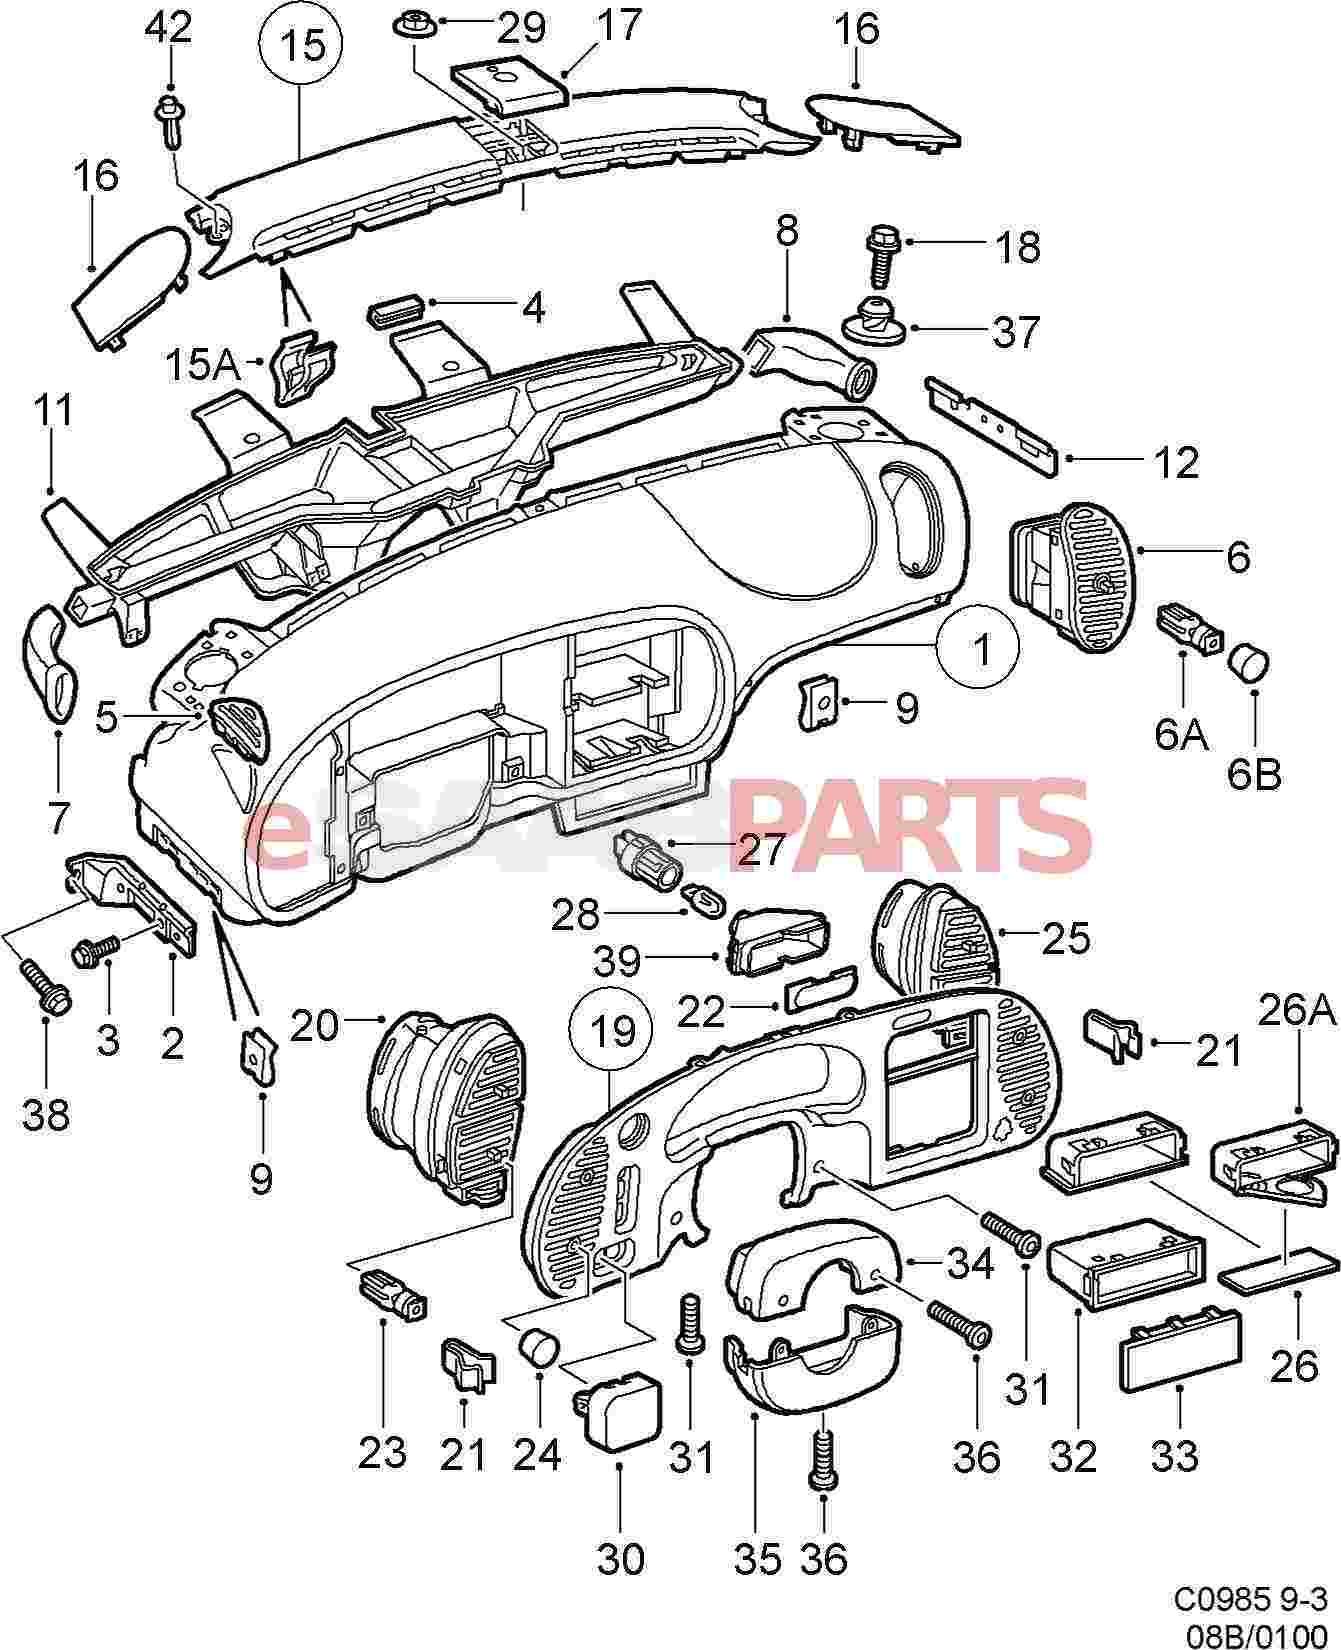 DIAGRAM] Fuse Block Diagram 6 Cylinder 1997 Jeep Wrangler FULL Version HD  Quality Jeep Wrangler -  KINGARTHURTHEBOOK.EDWIGEDEBENOIST-MARCHER-AUTREMENT.FRMarcher Autrement